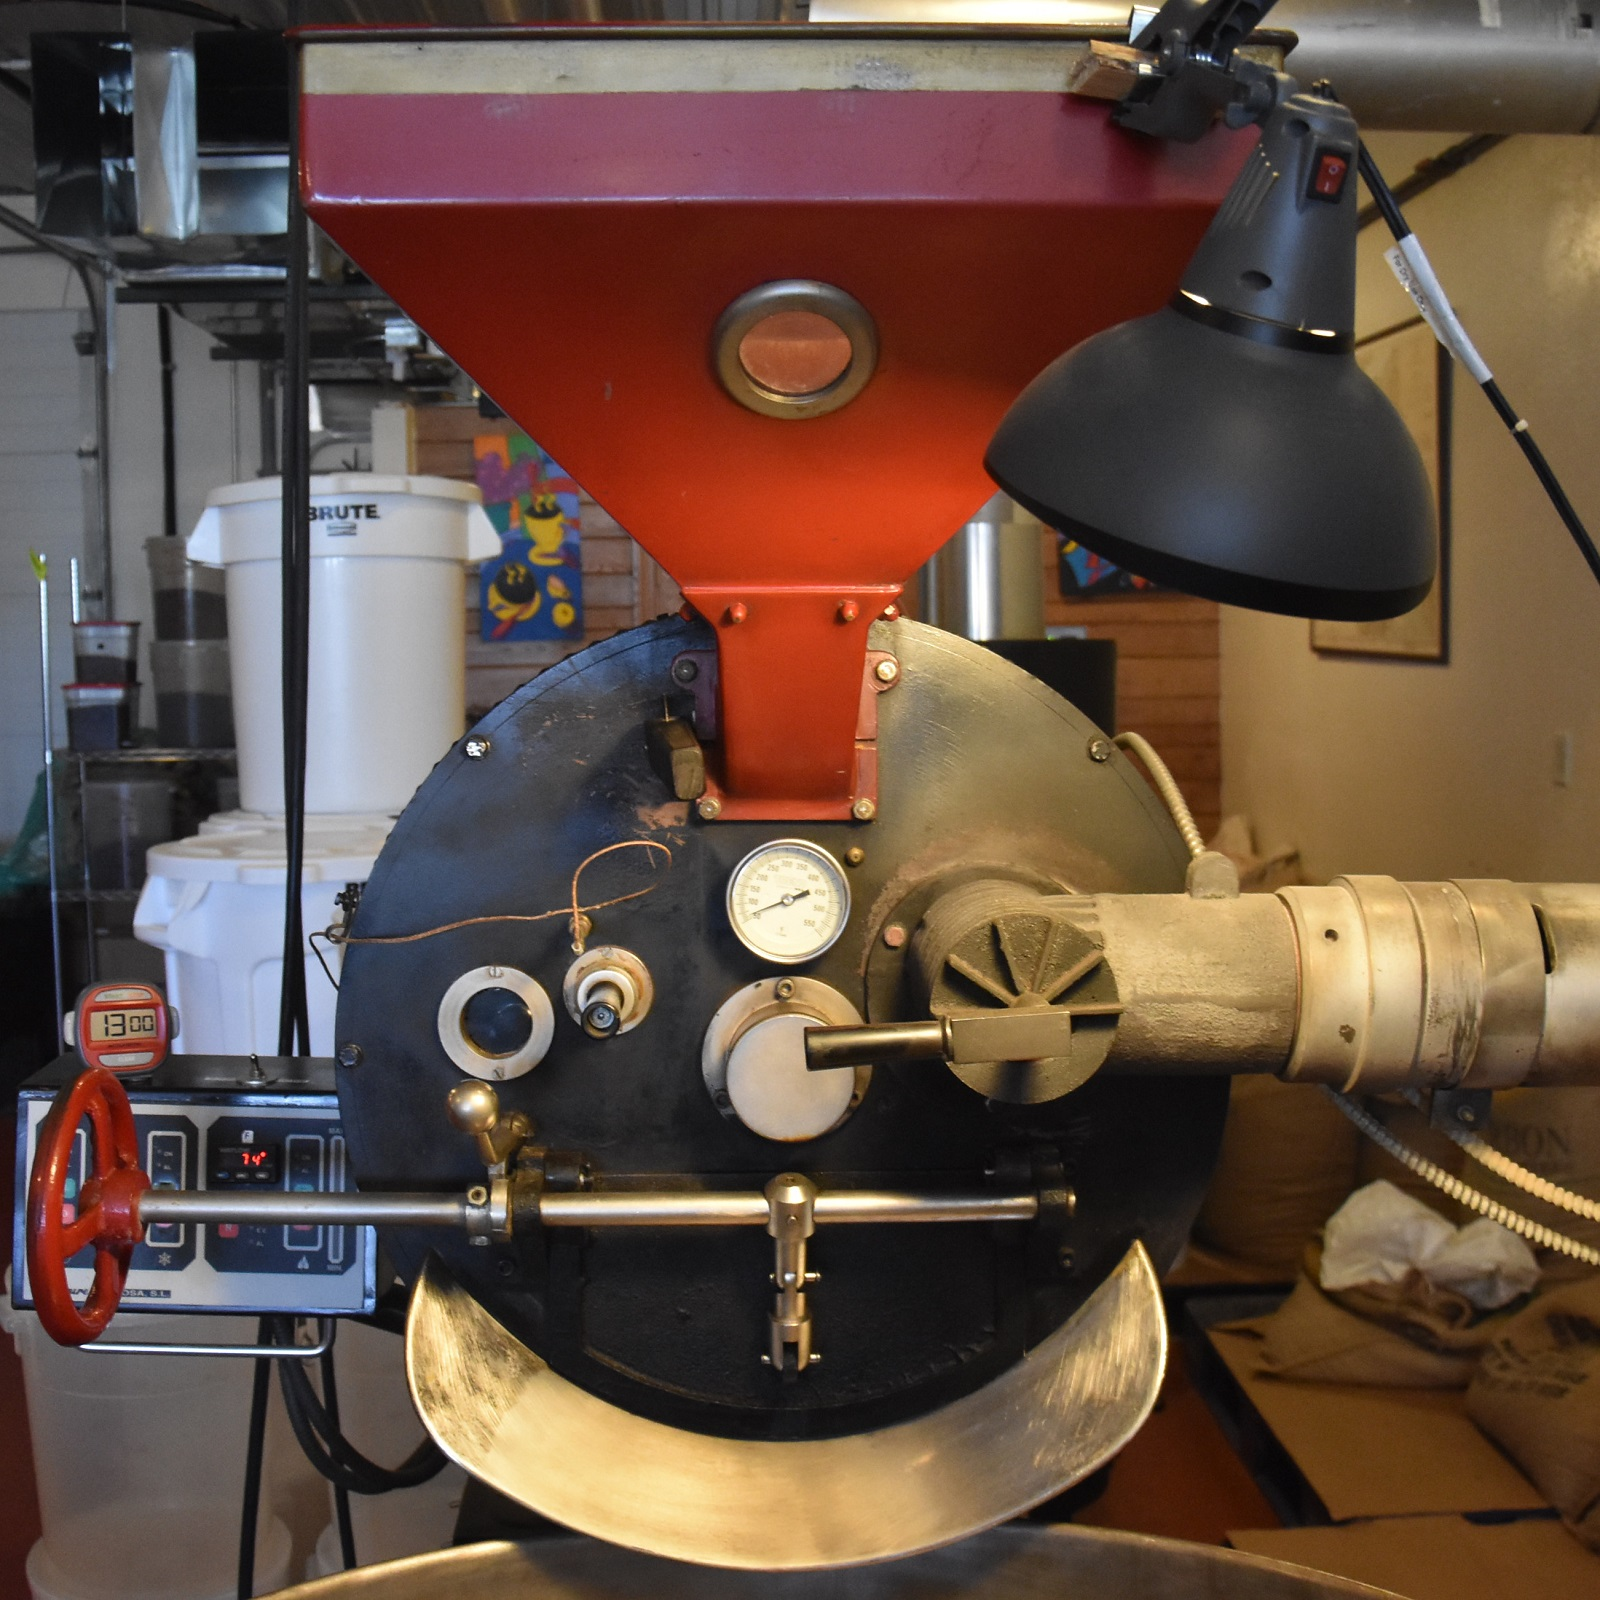 The red 15kg Toure roaster from Spain, the heart of the operation at Uncommon Grounds Specialty Roaster.